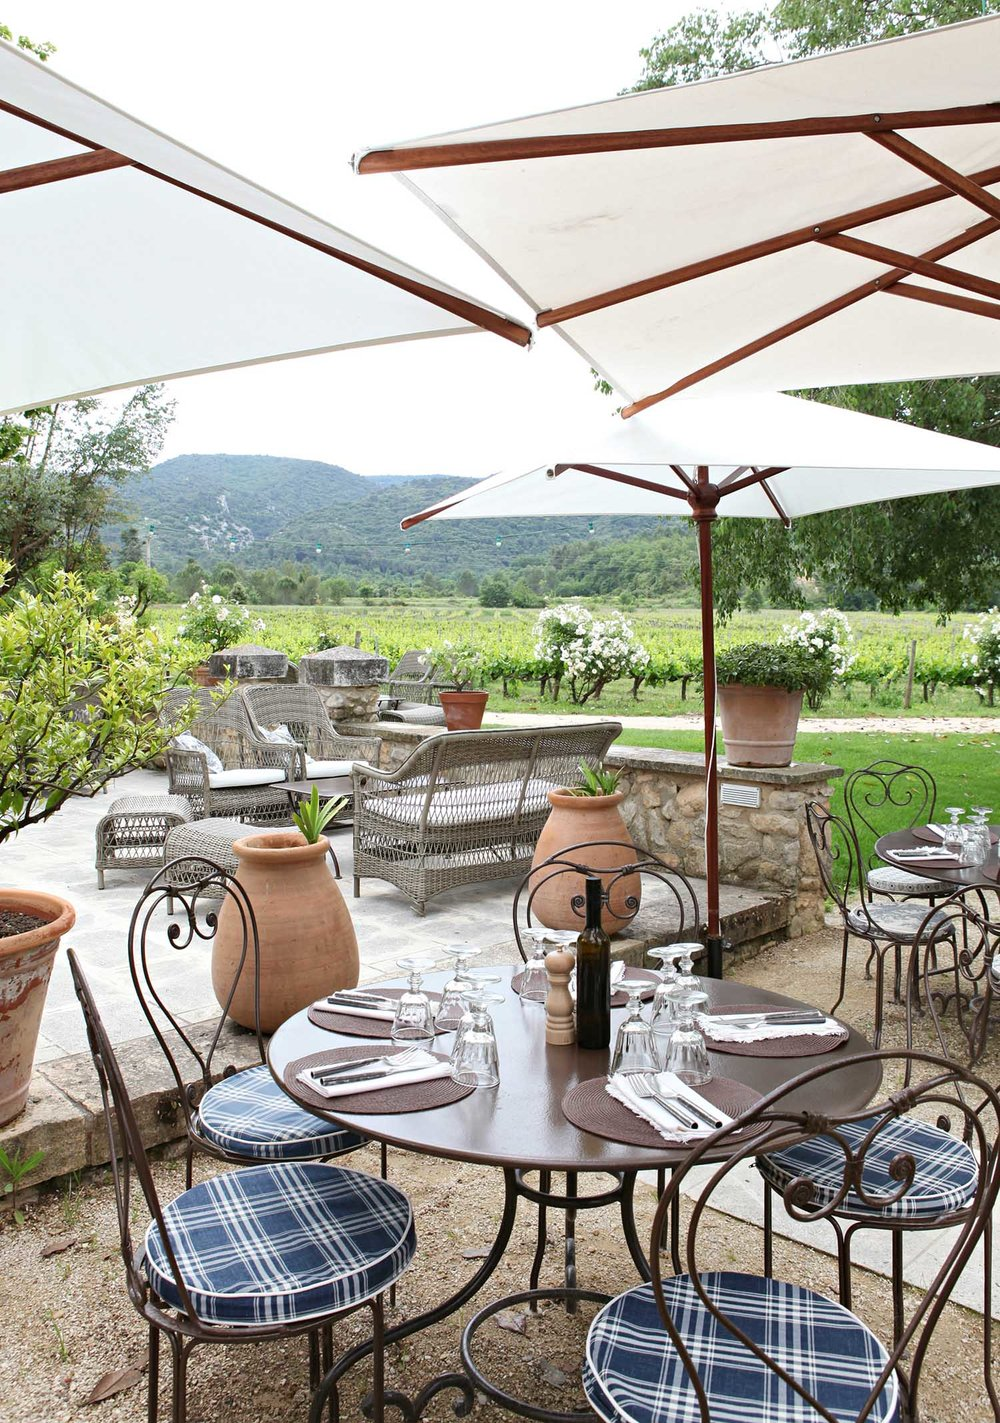 vineyard-lunch-provence.jpg